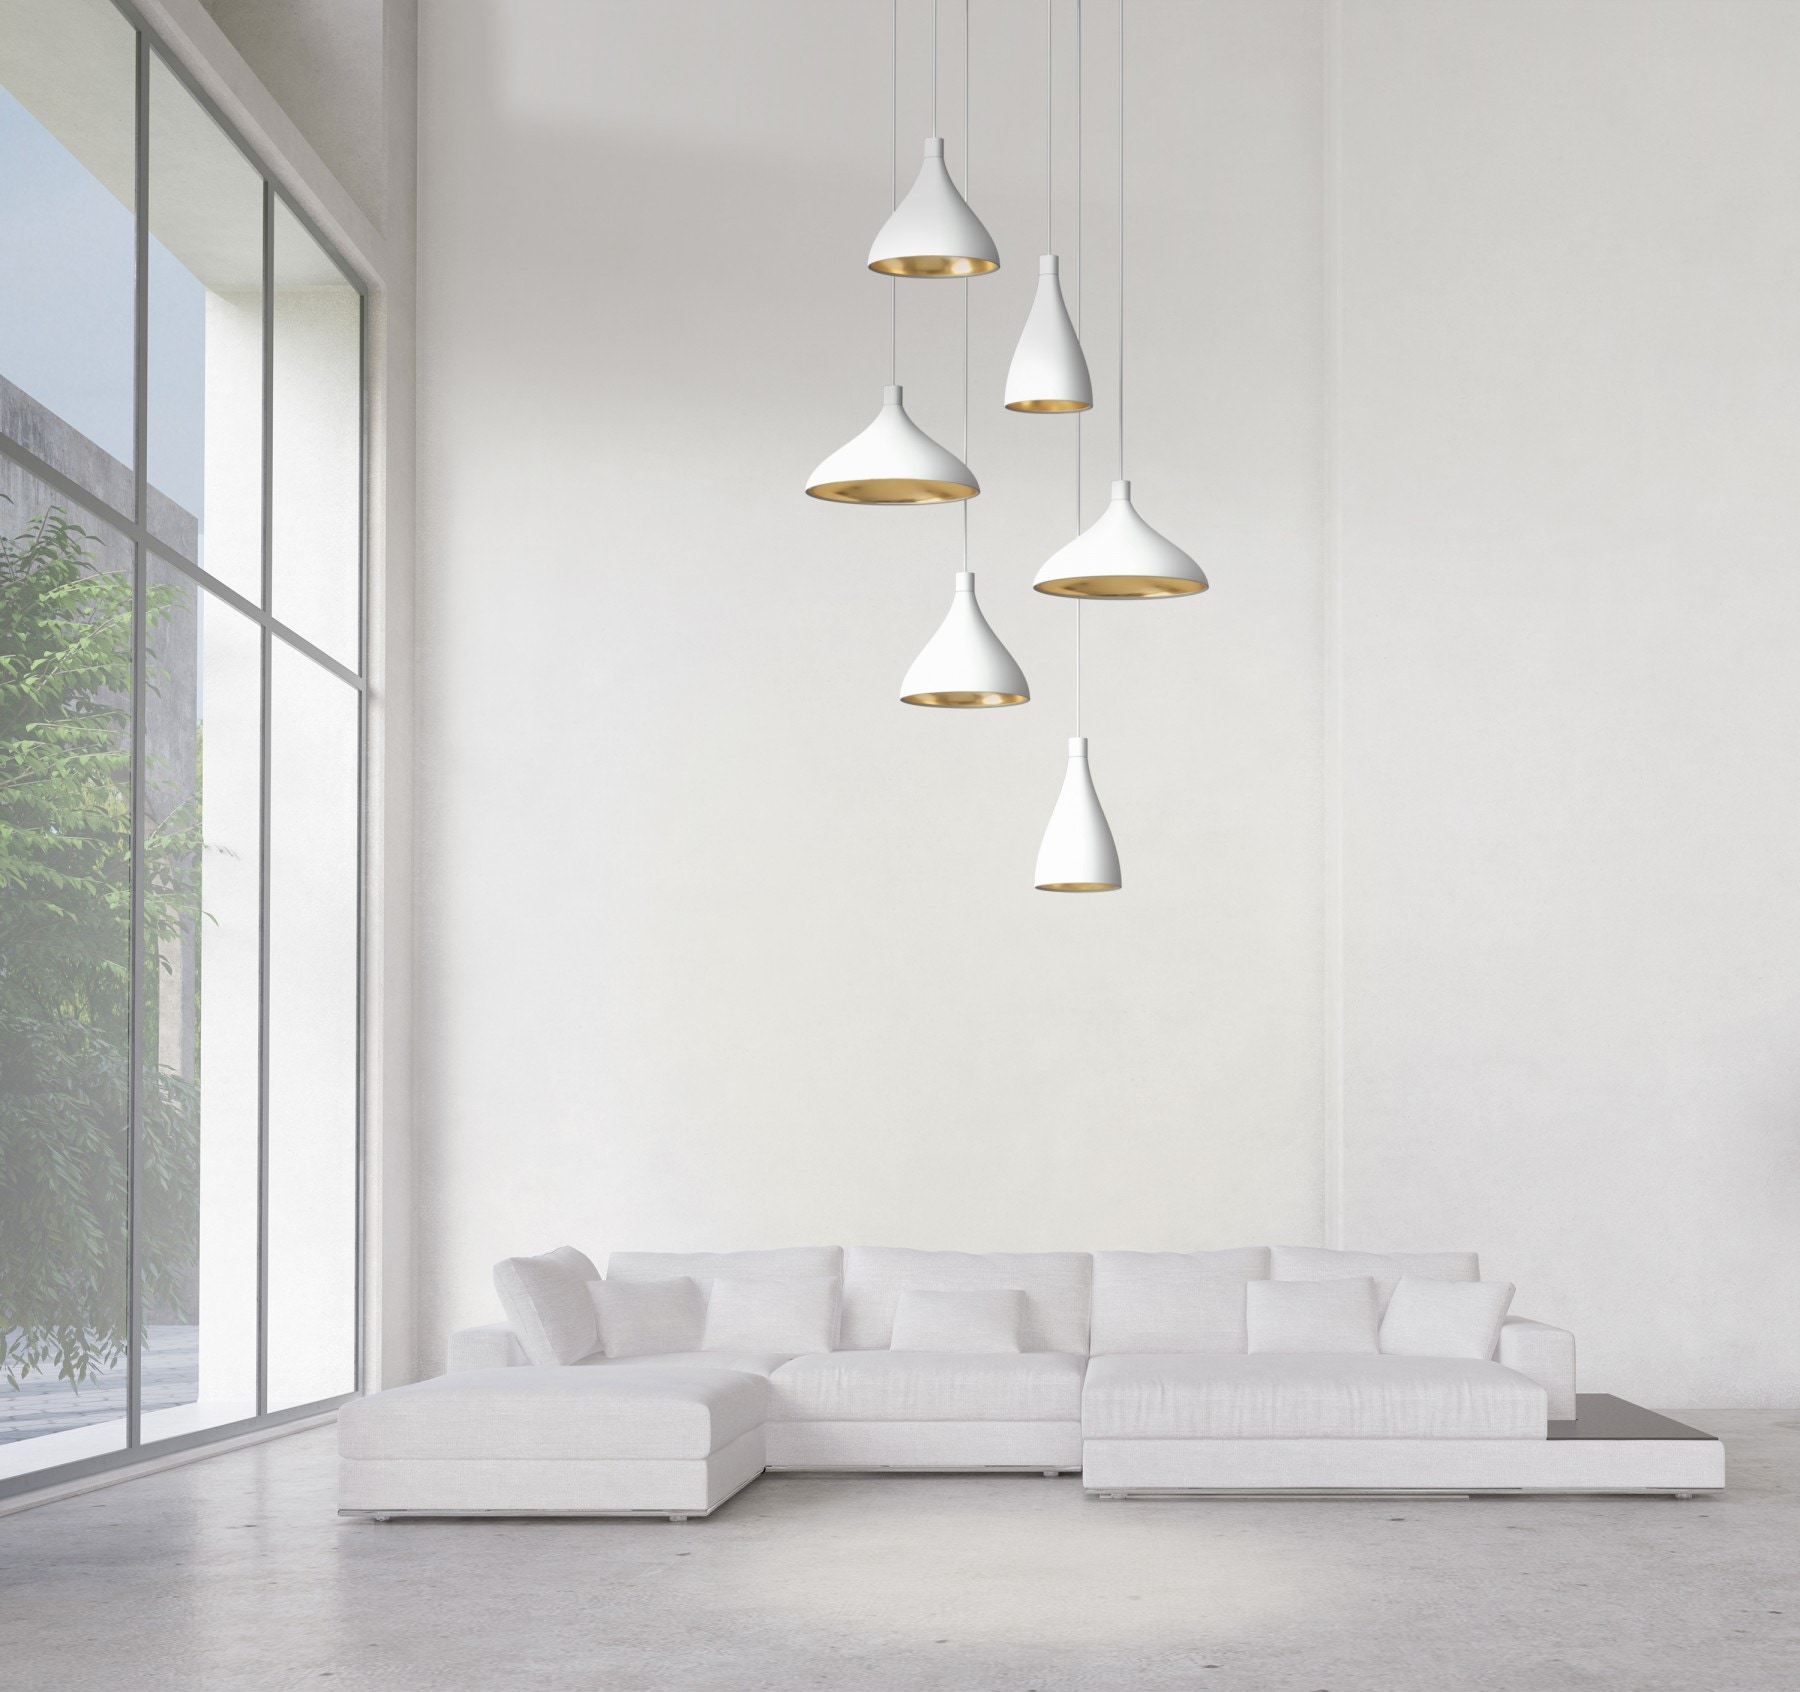 Pablo Swell 2 Chandelier Mix Pendant Lamp Modern Planet